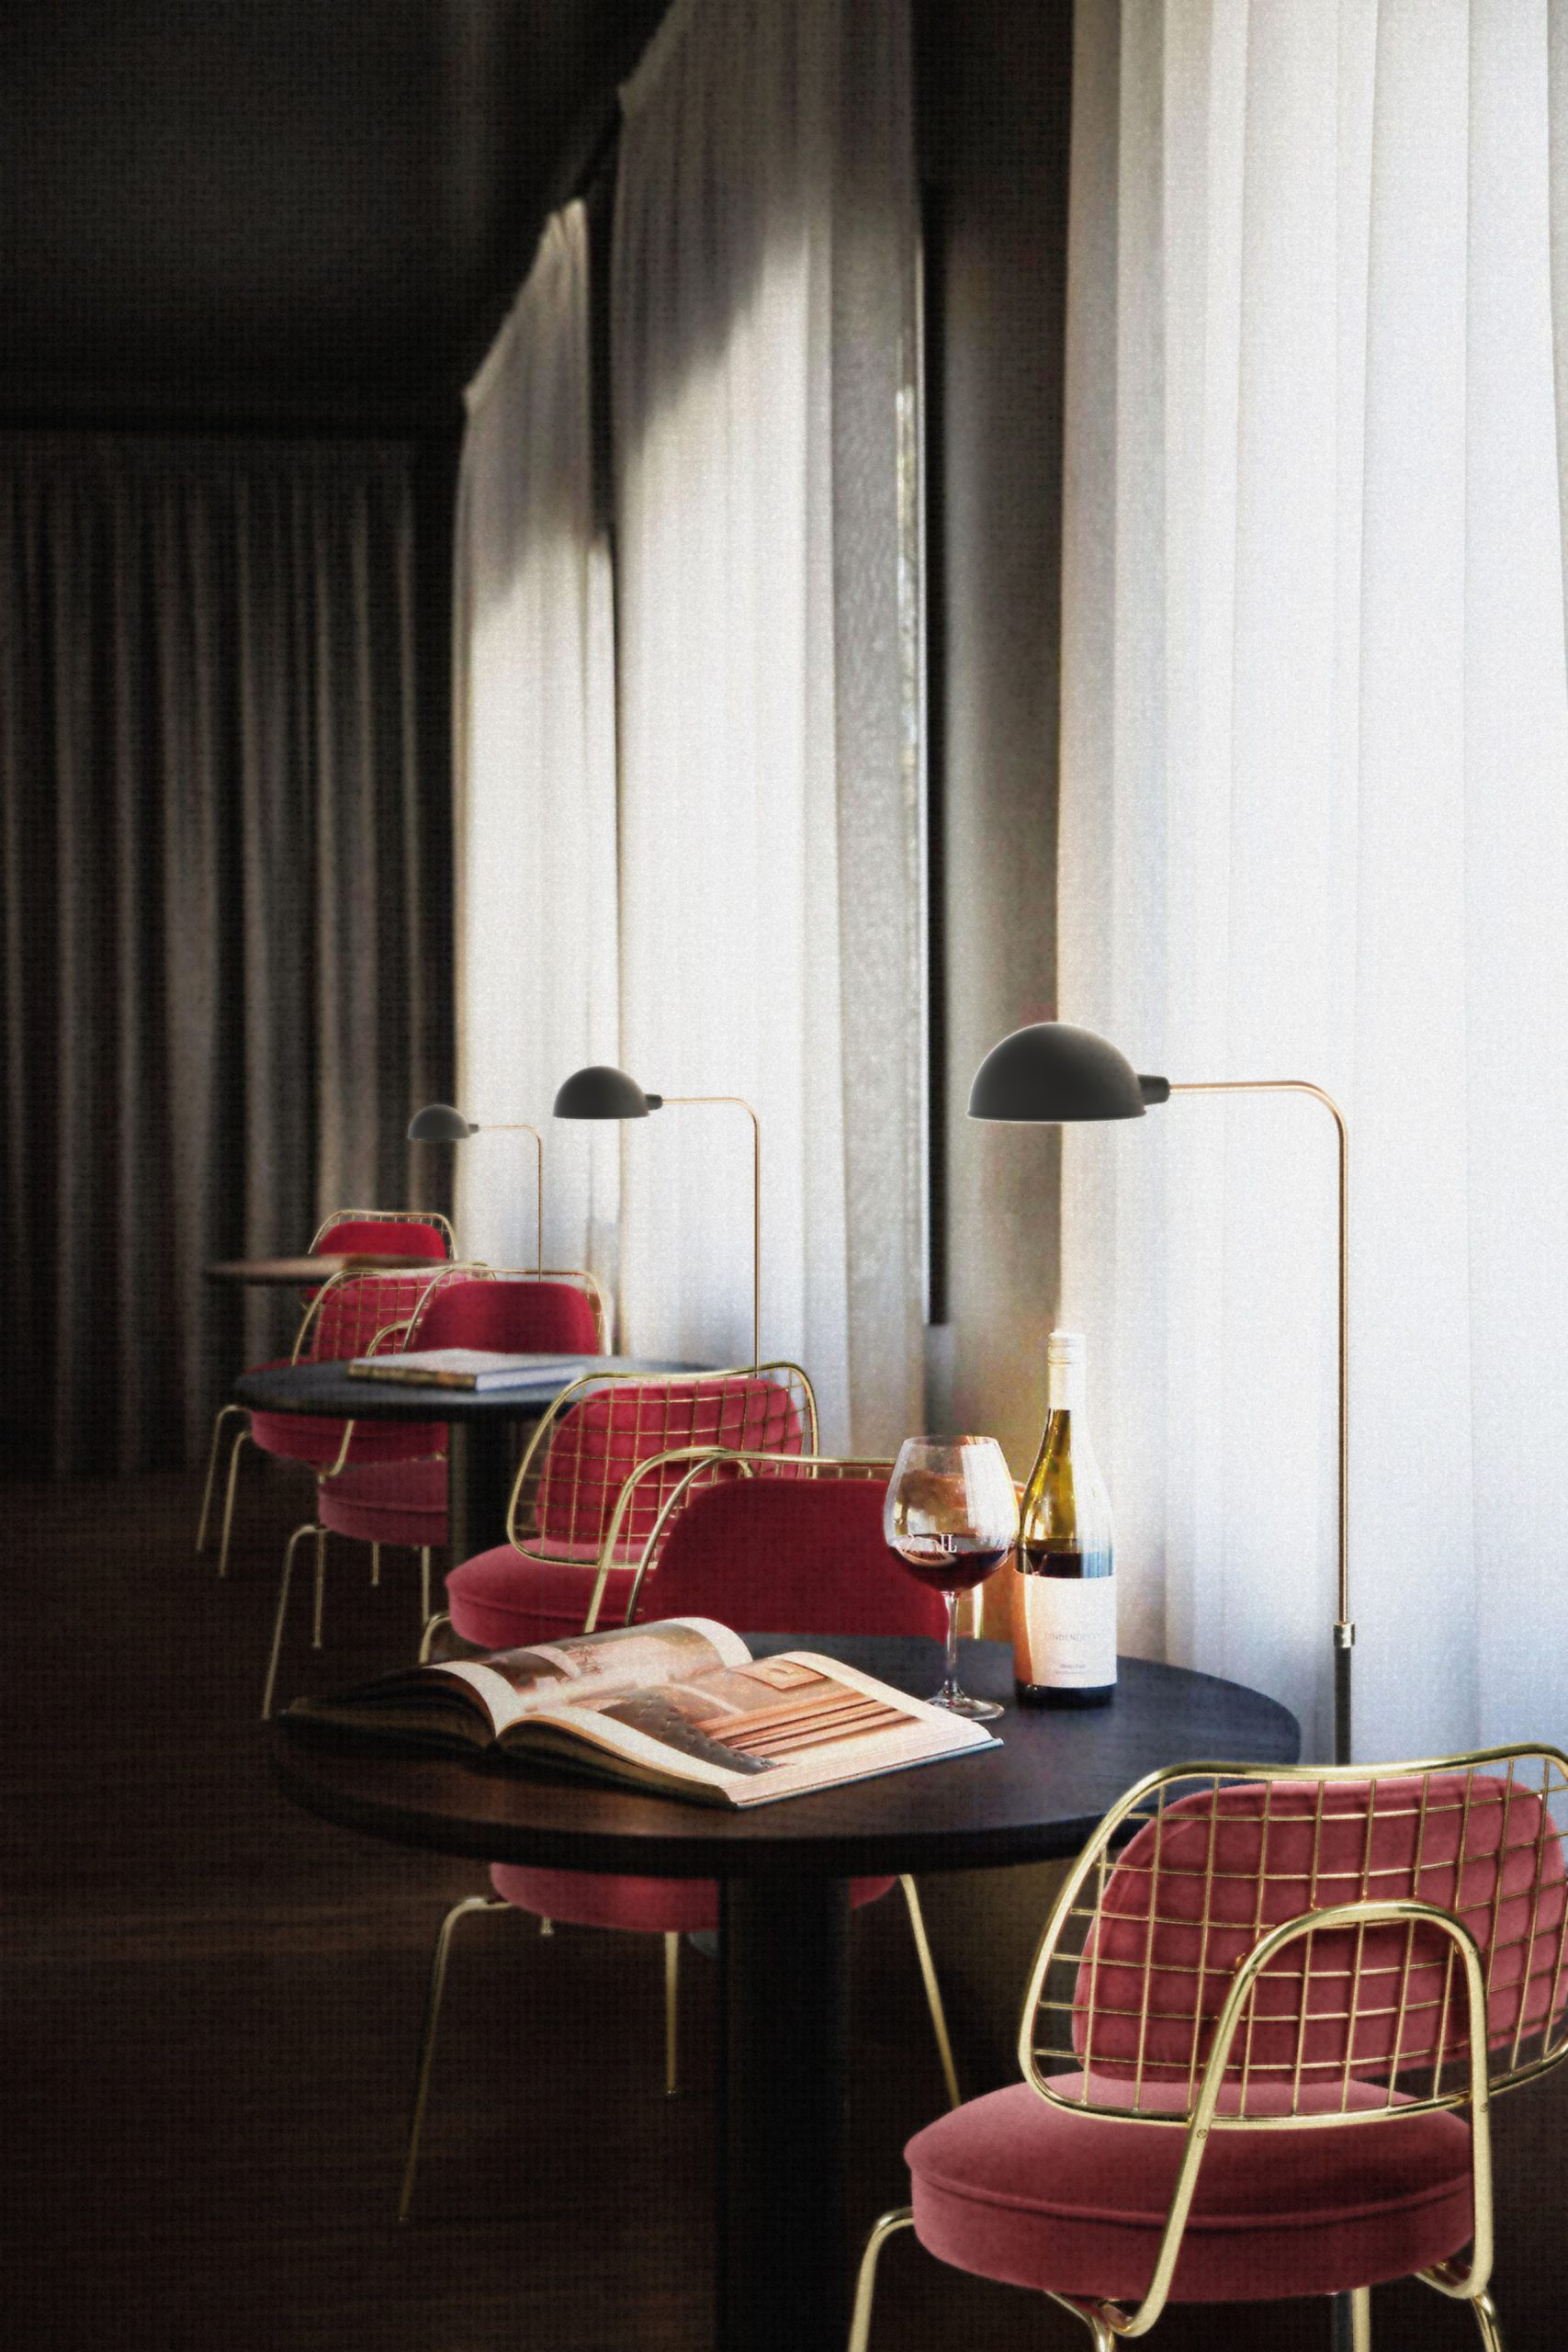 MODERN RETRO DINING CORNER IN A LUXURY RESTAURANT